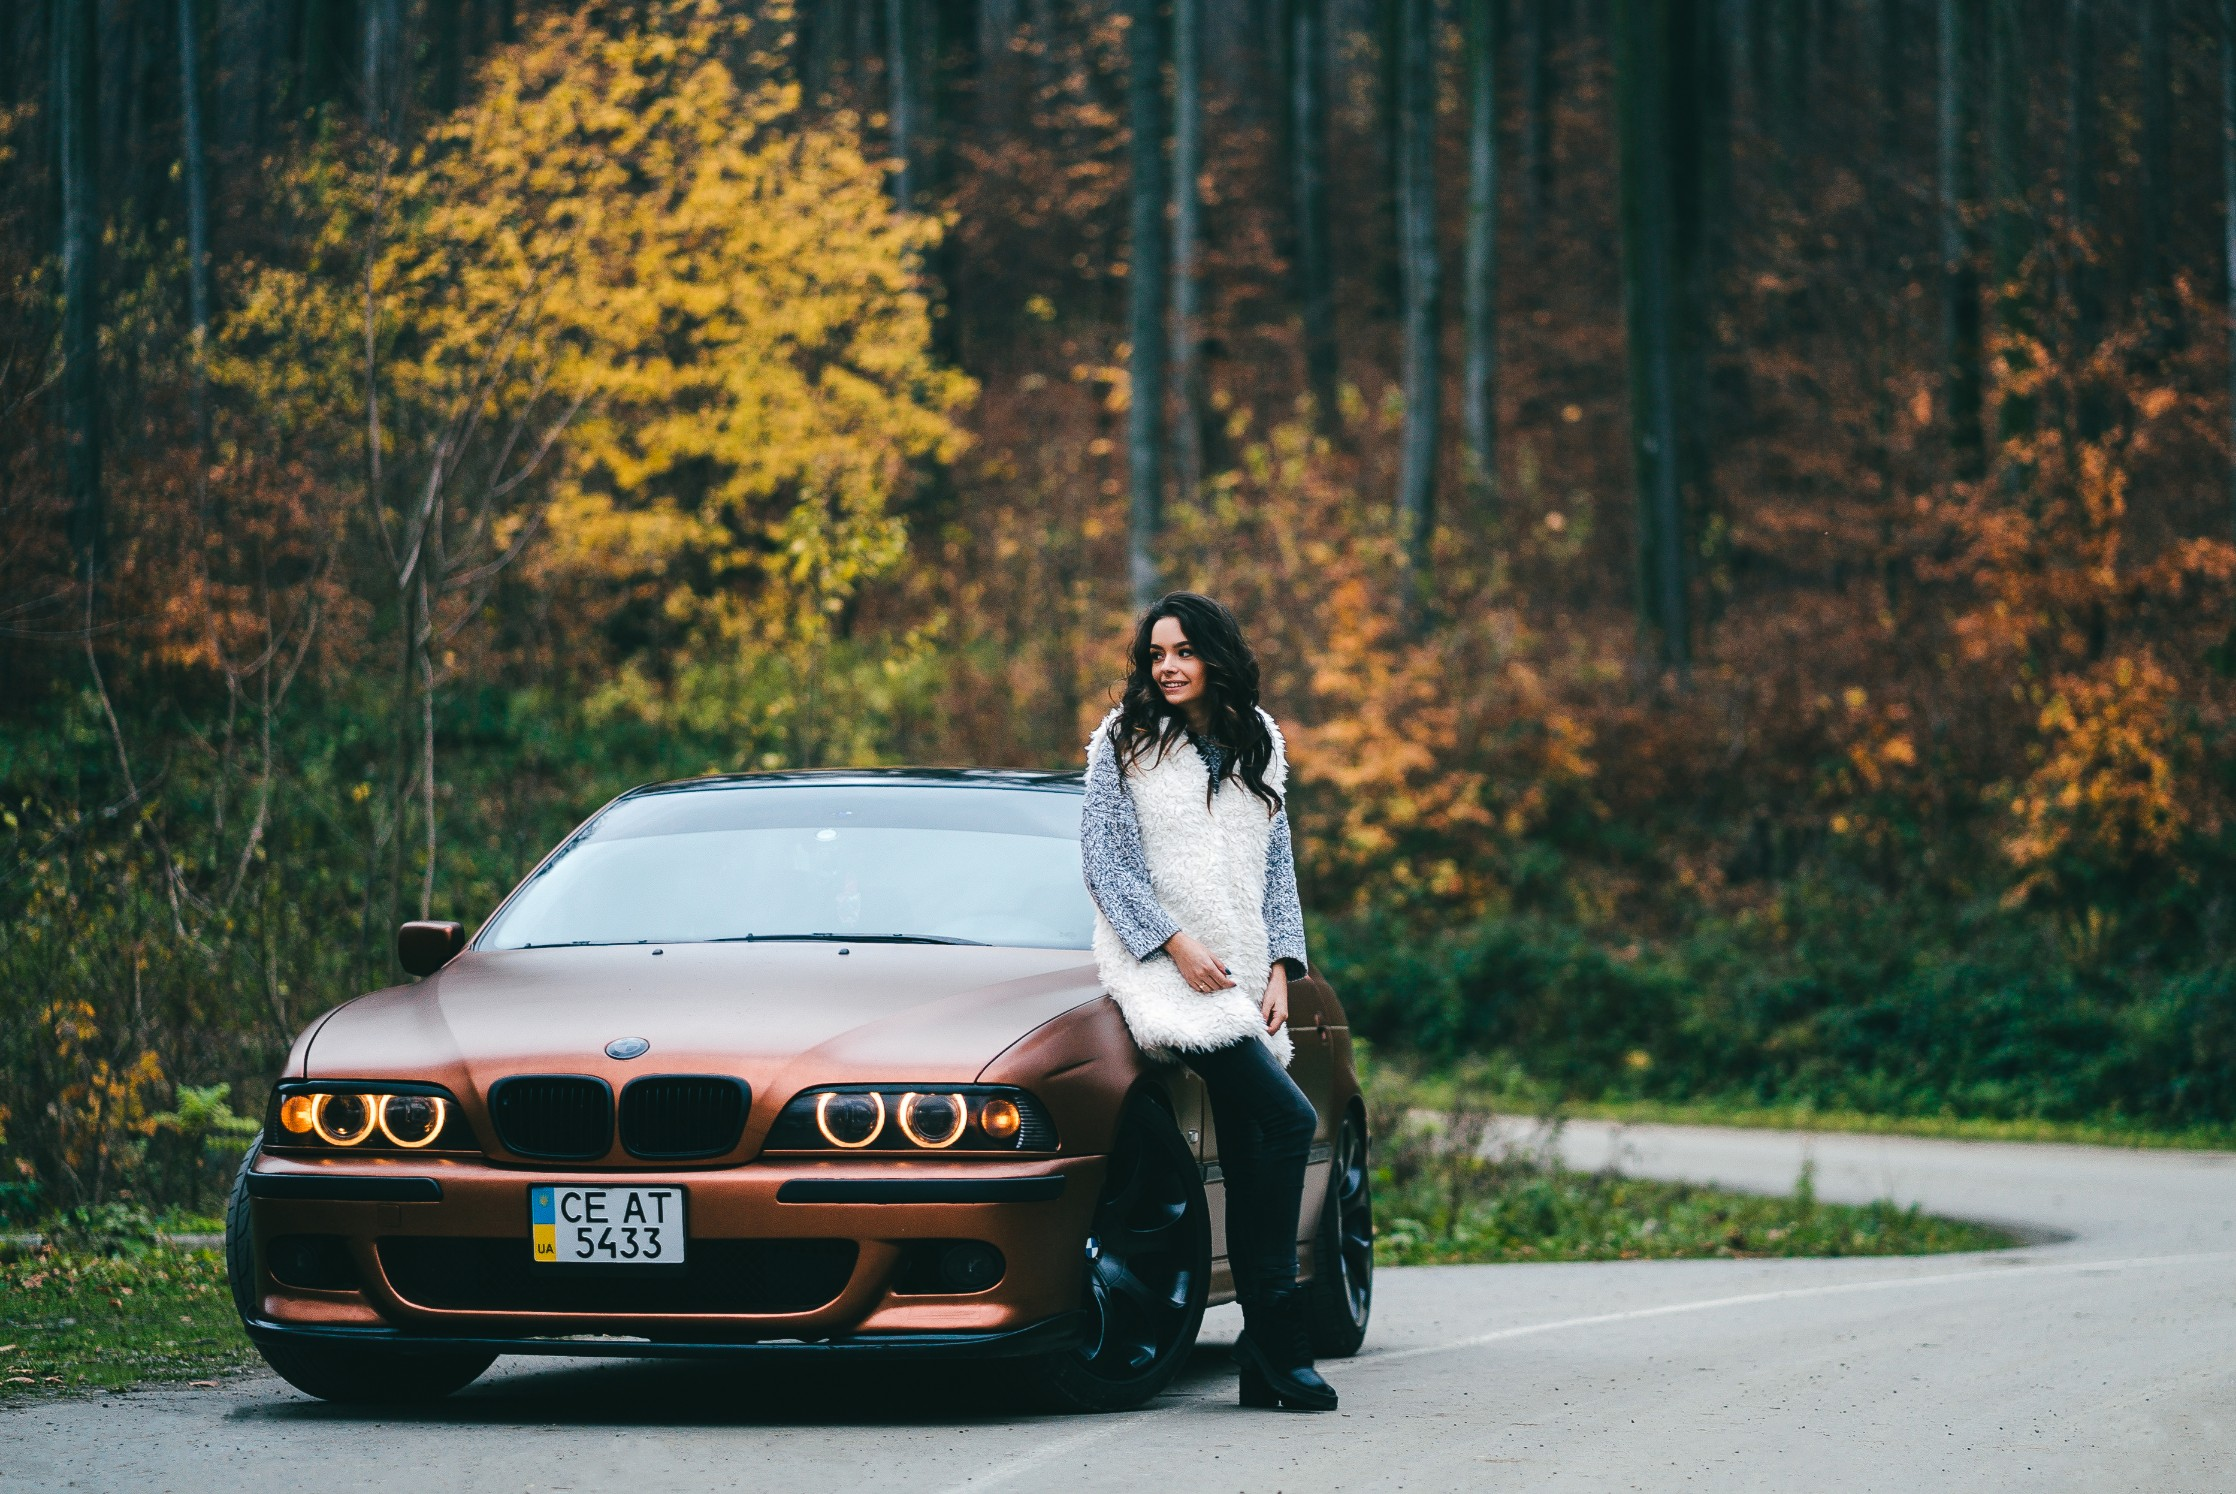 Photography Gallery Engagement Photoshoot I Shoot Cars And